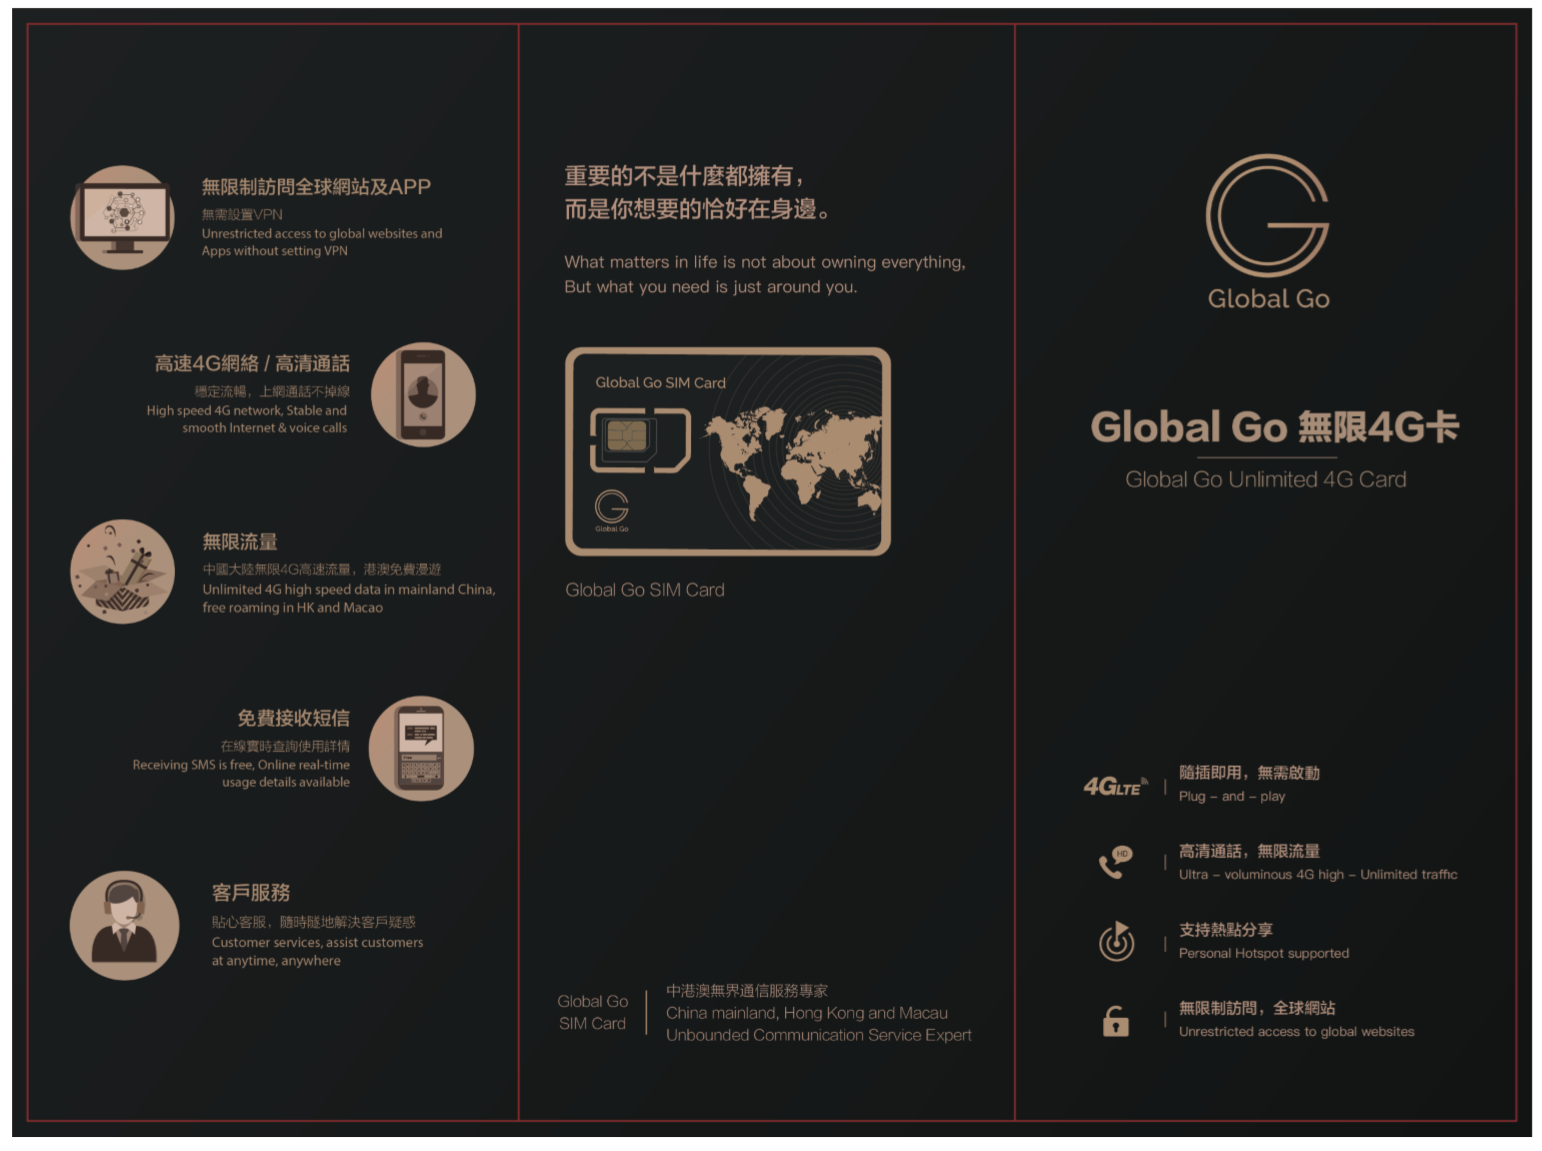 [Truslink Travel Sim Card] Global Go China/HongKong/Macau Sim Card 9 Days  Unlimited 4G Data Sim Card Prepaid card, Unrestricted access to global